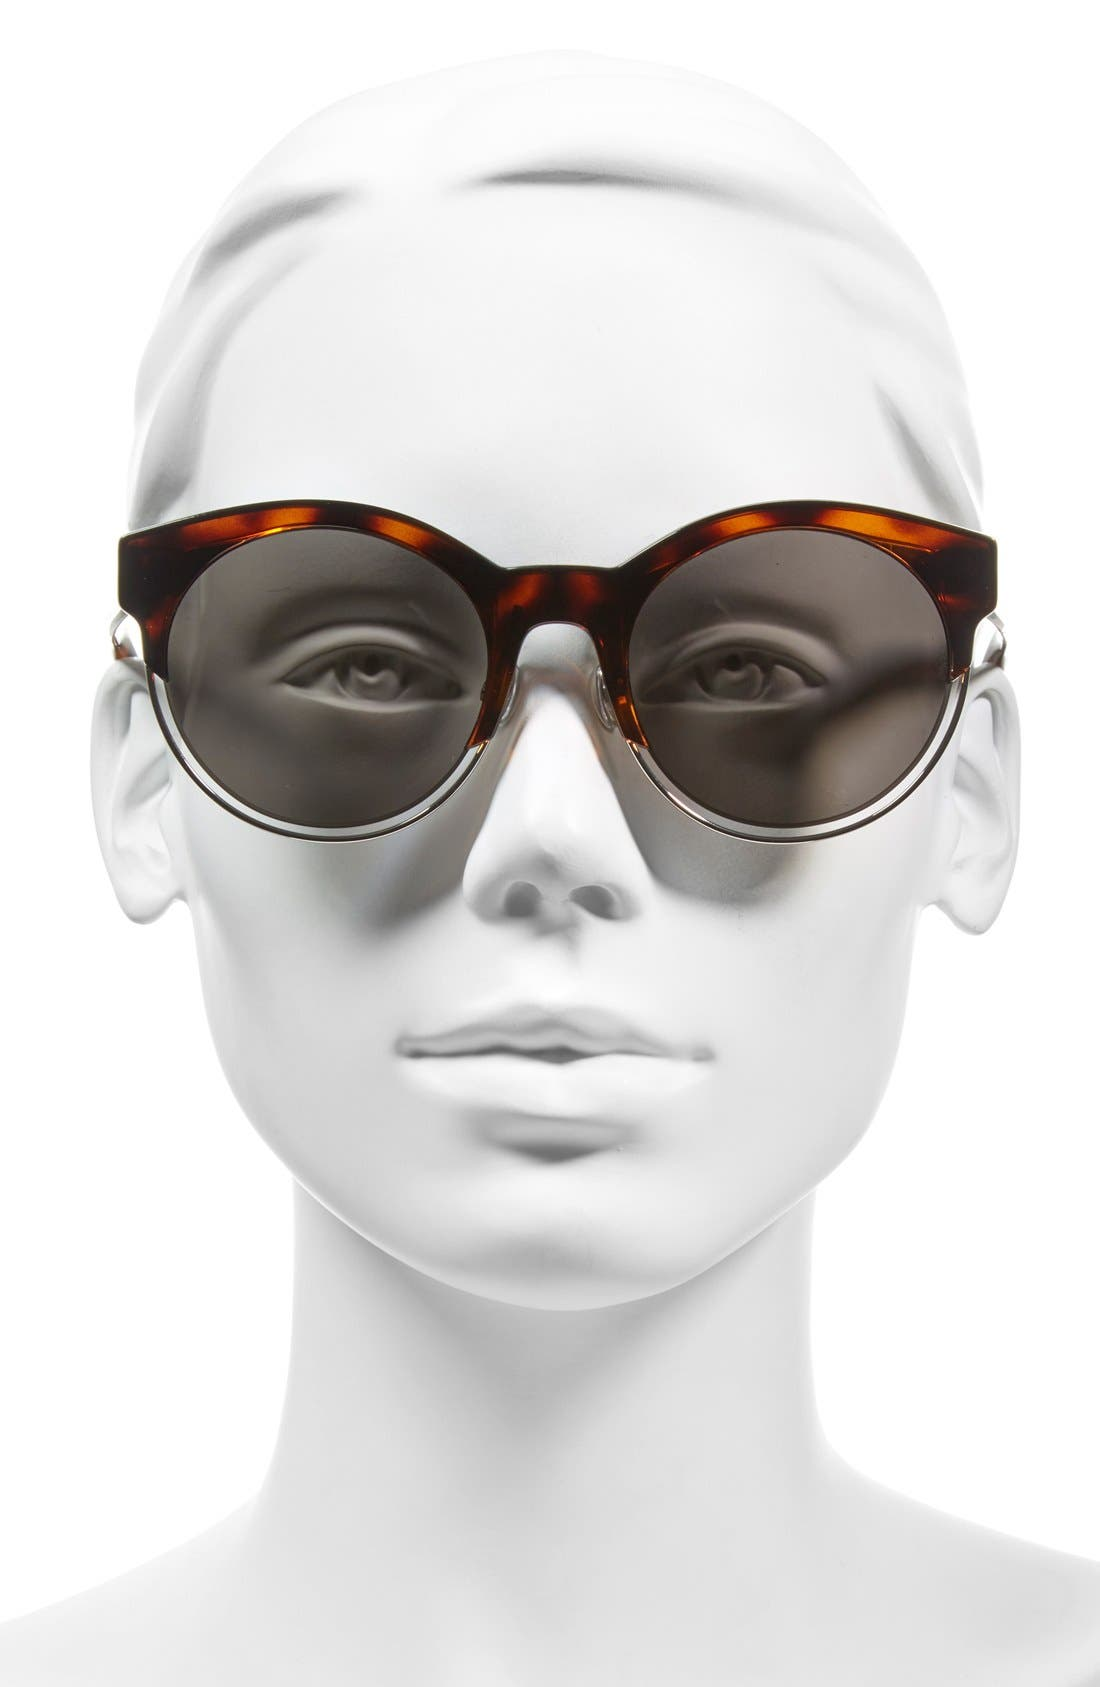 Siderall 1 53mm Round Sunglasses,                             Alternate thumbnail 13, color,